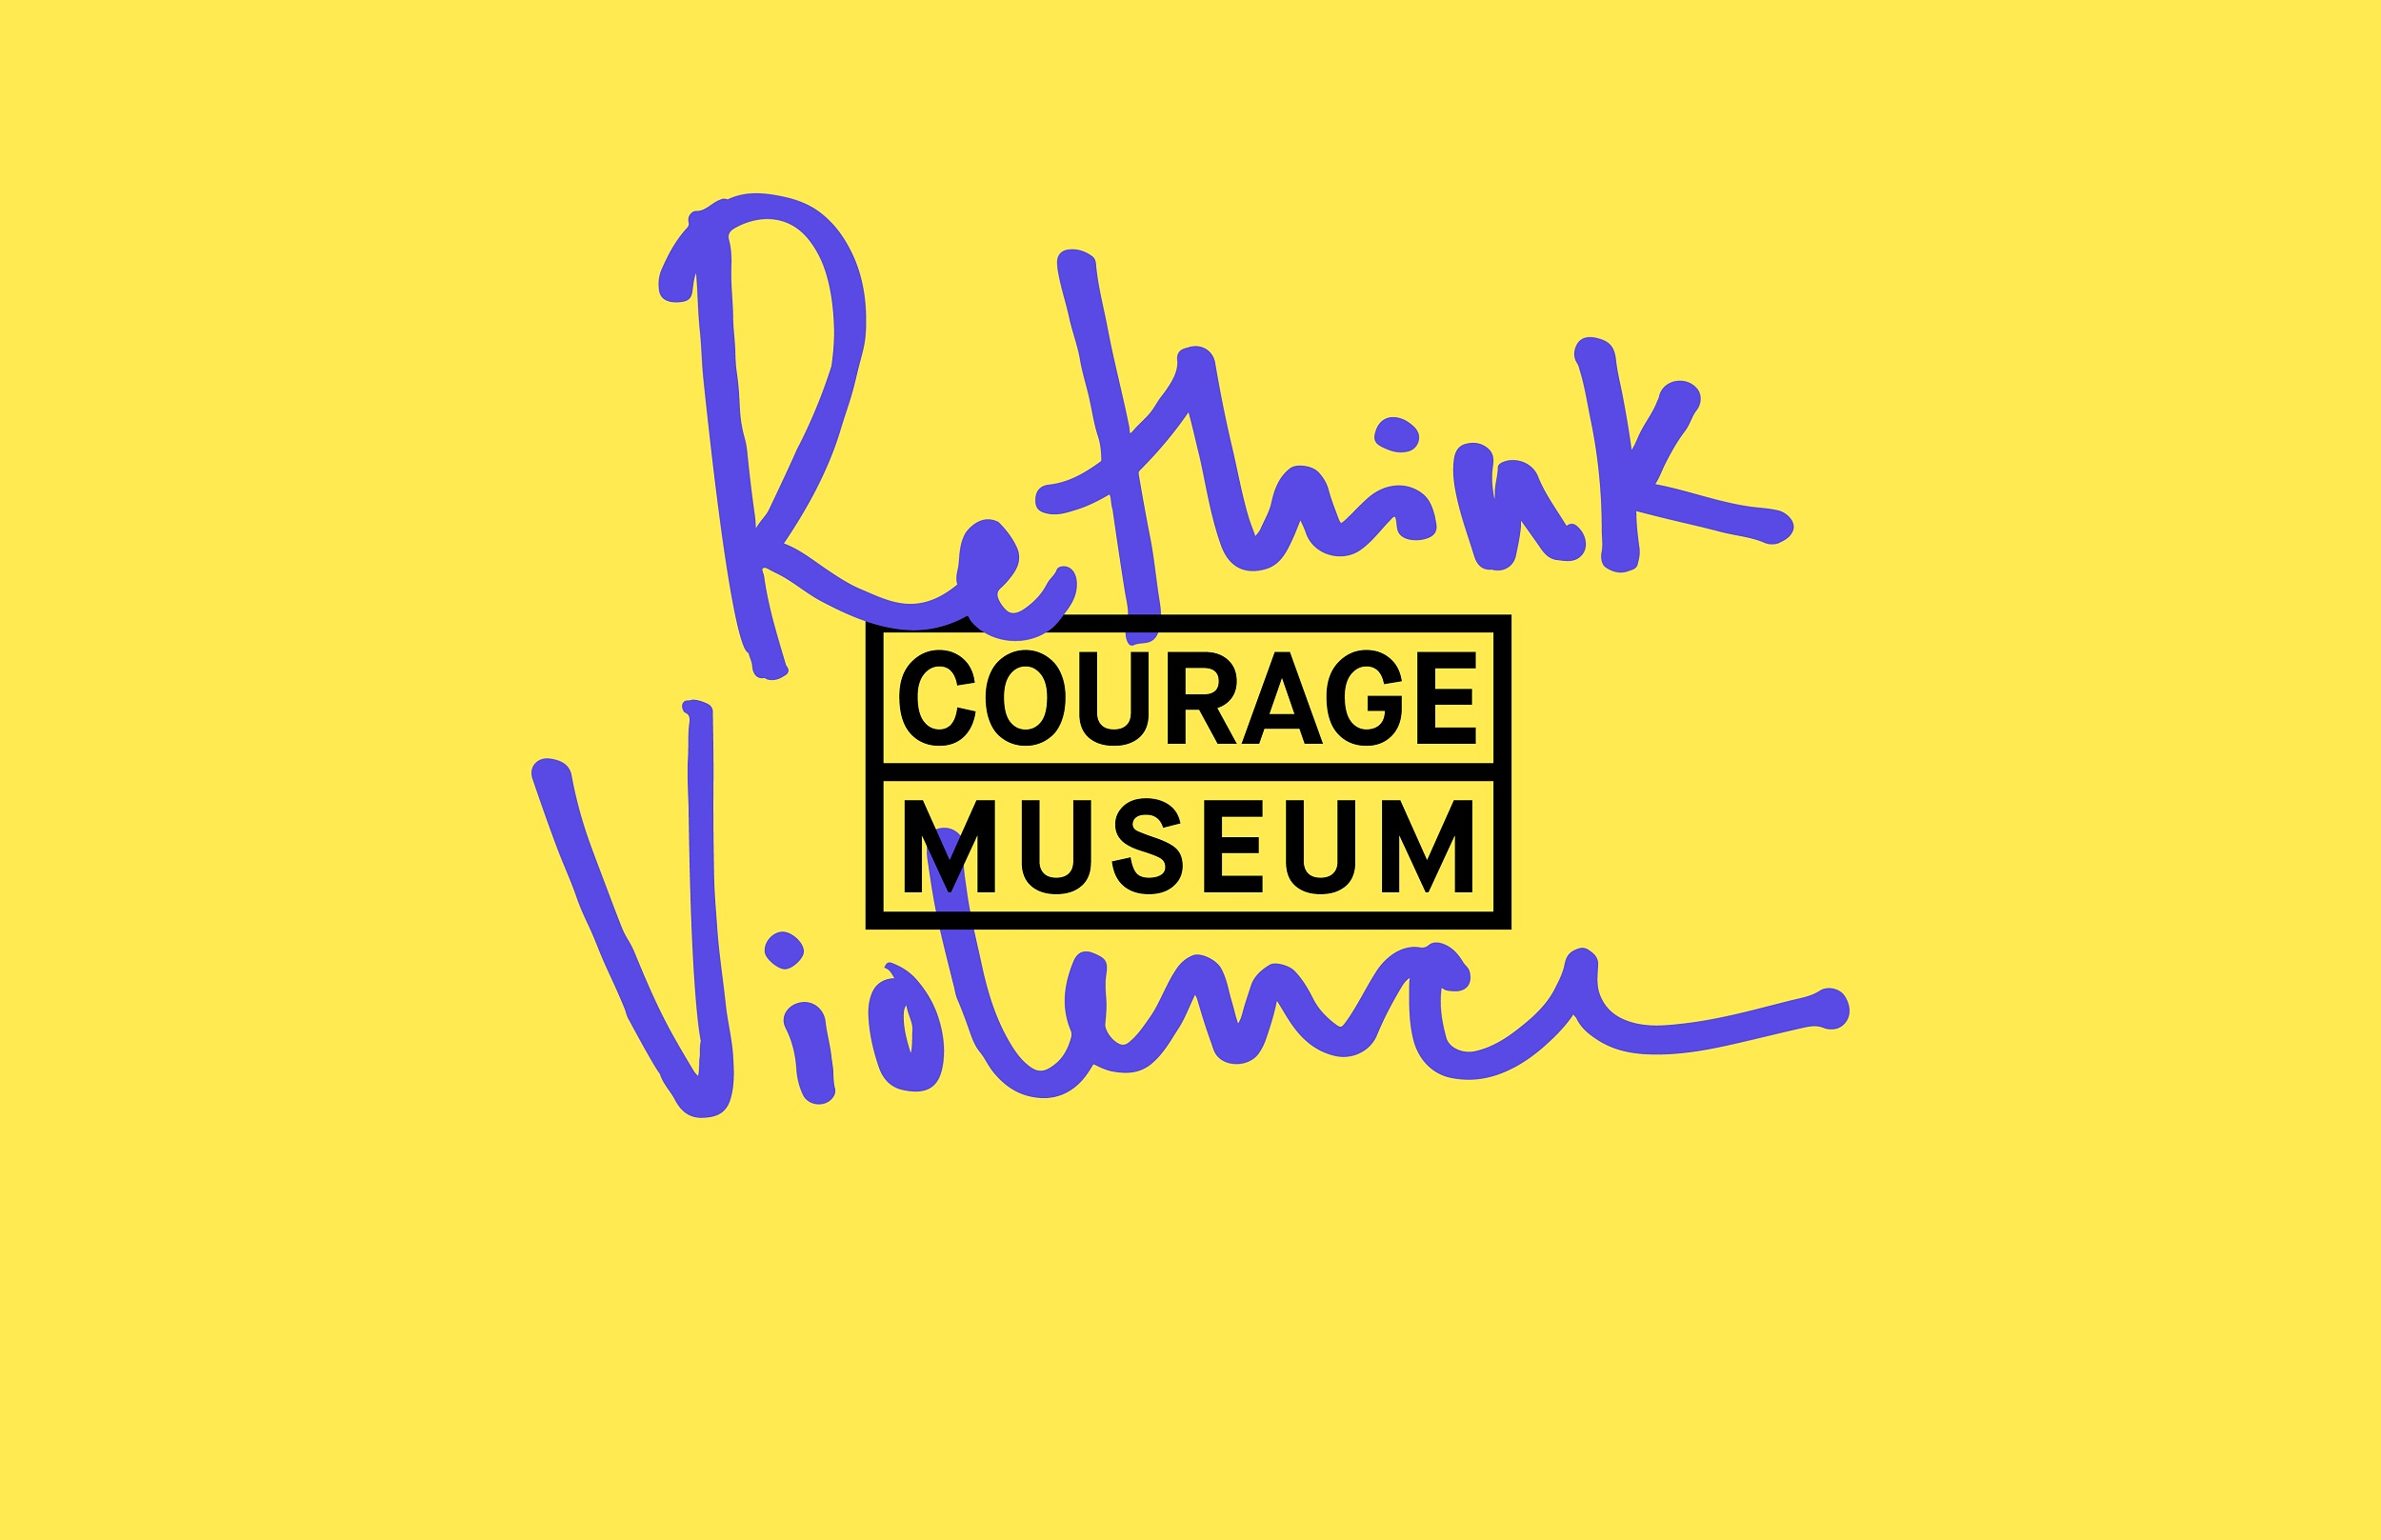 courage museum logo